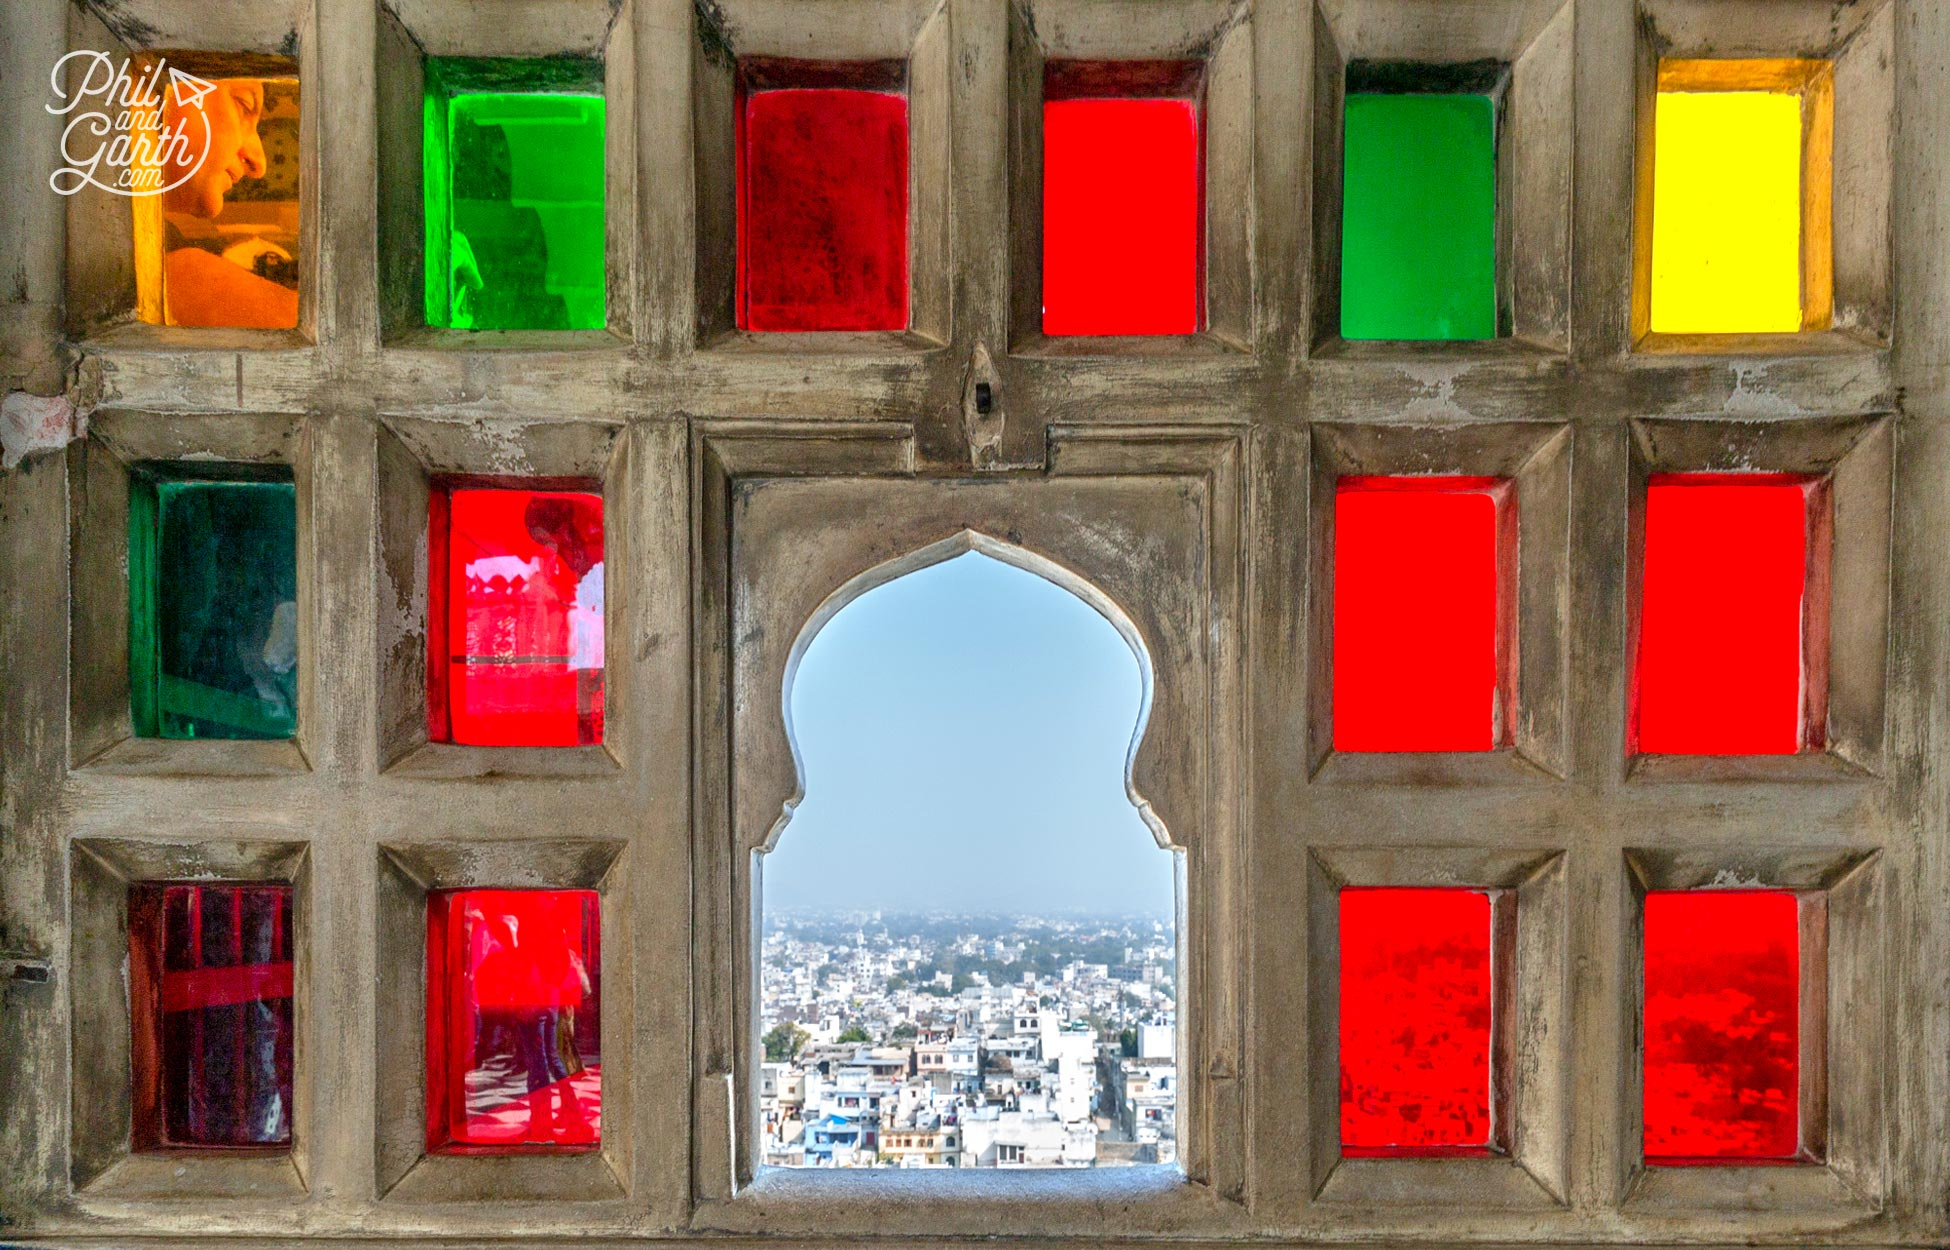 Our favourite window in Badi Charur Chowk looking out over Udaipur